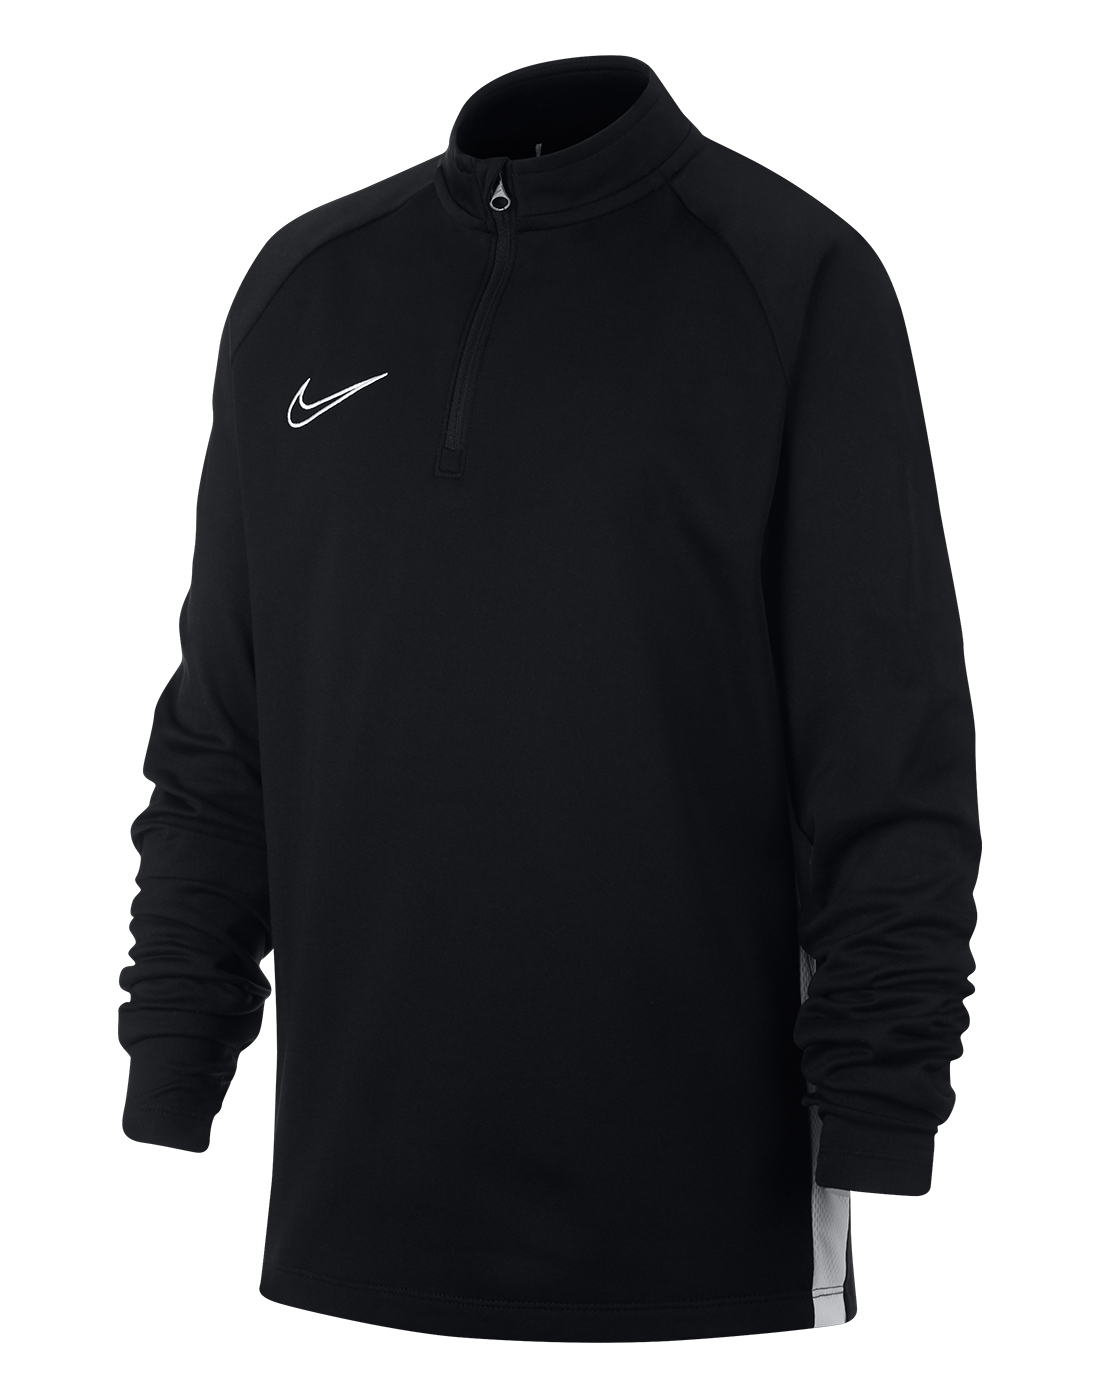 9125a064 Nike Older Boys Academy Drill Half Zip Top | Life Style Sports